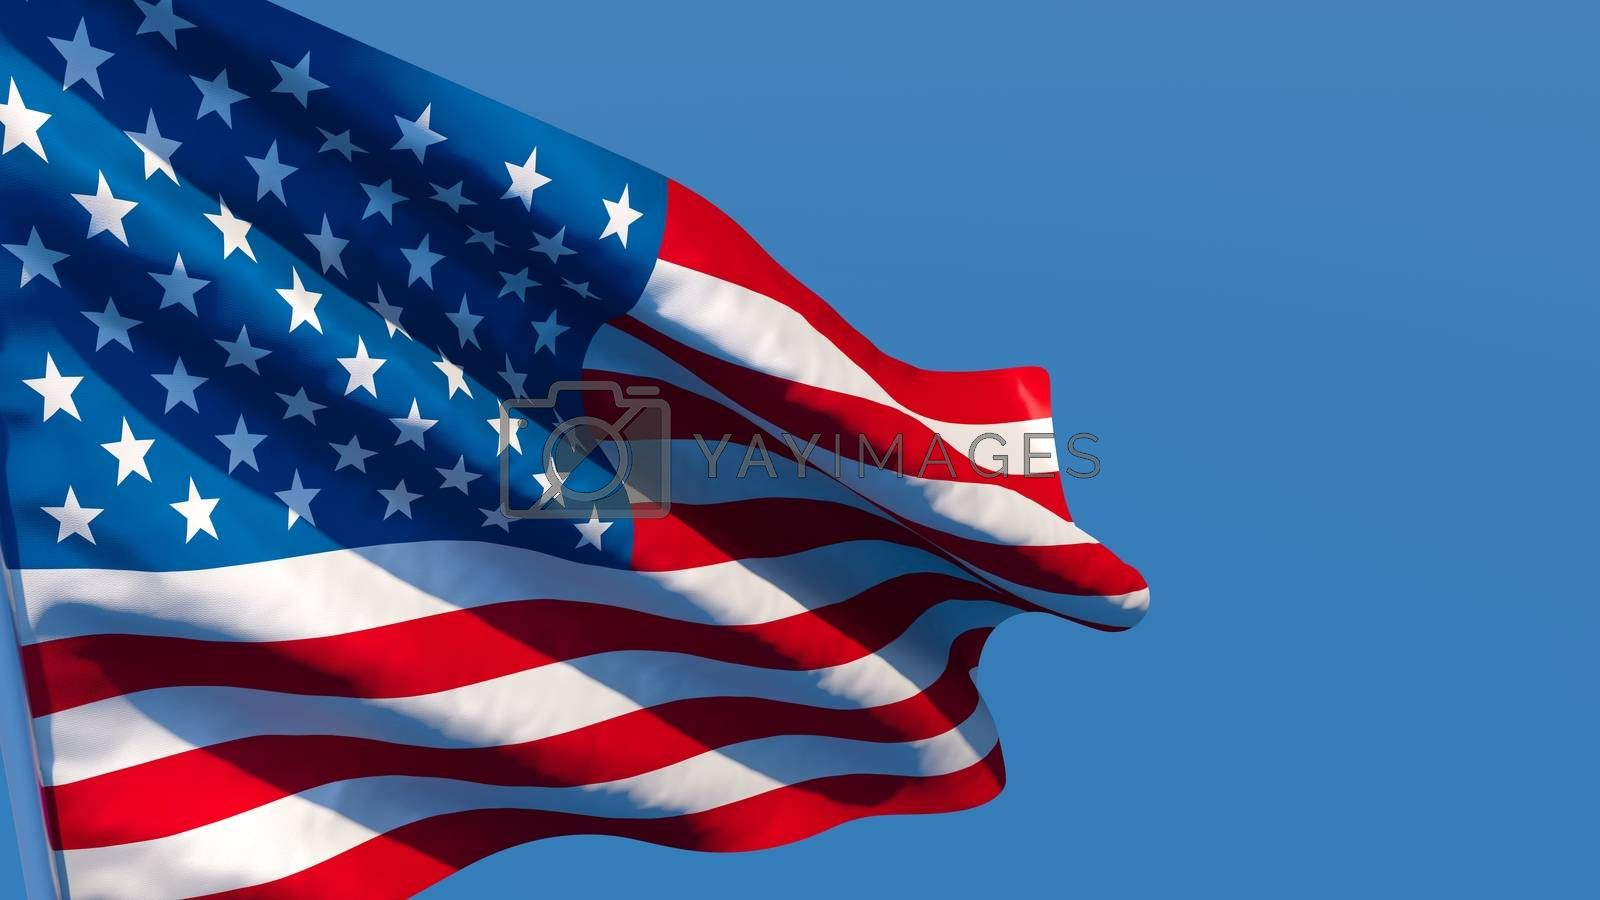 3D rendering of the national flag of United States of America waving in the wind against a blue sky